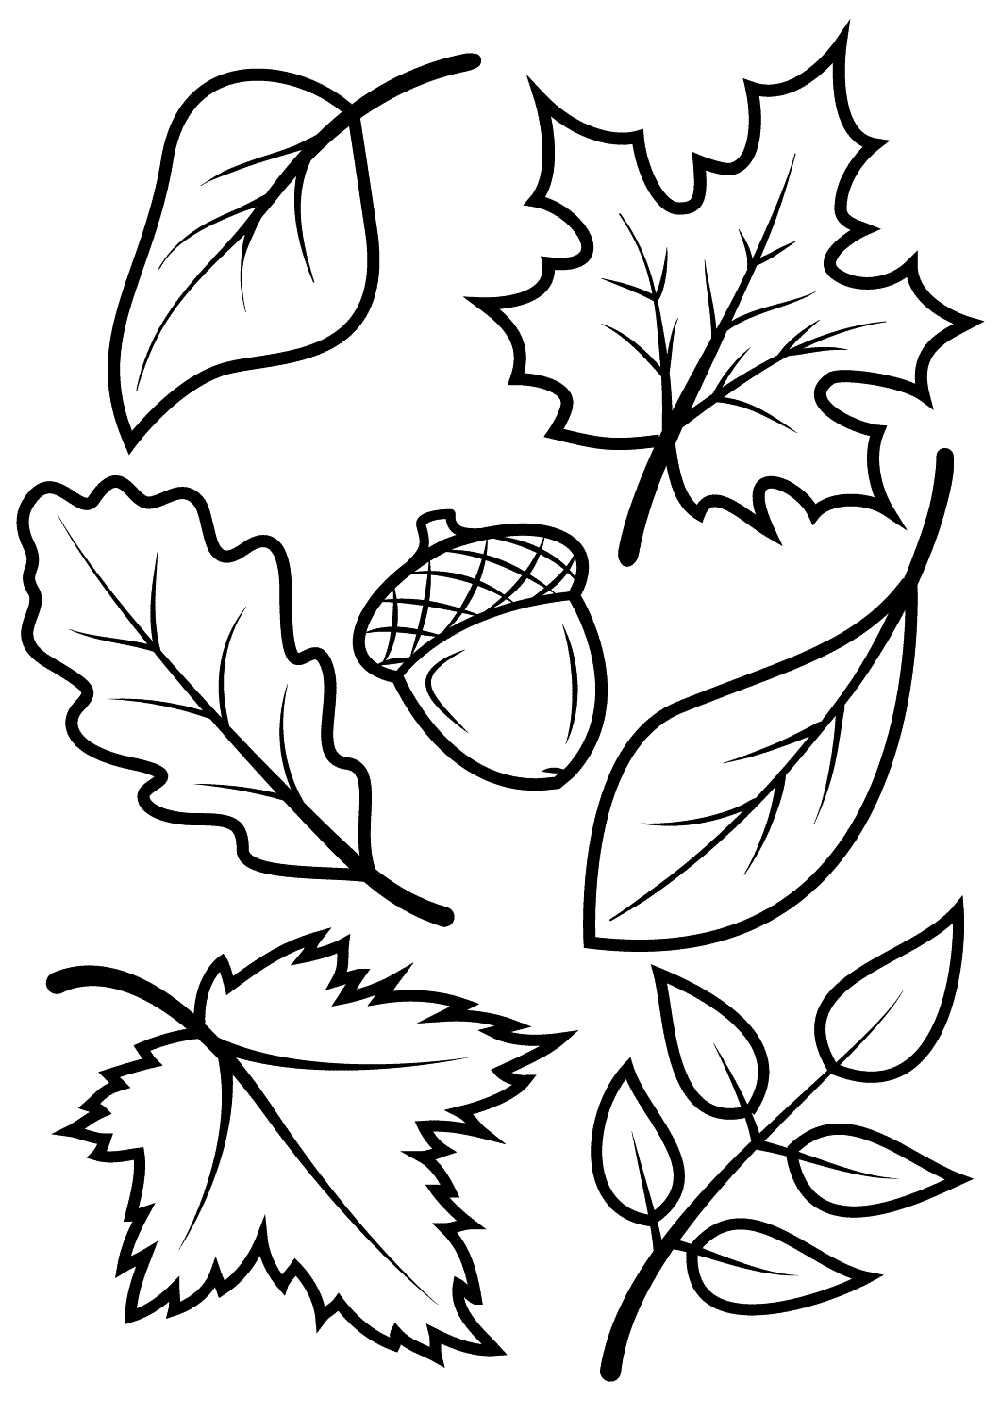 autumn leaves pictures to colour coloring club anadarko community library pictures to colour autumn leaves